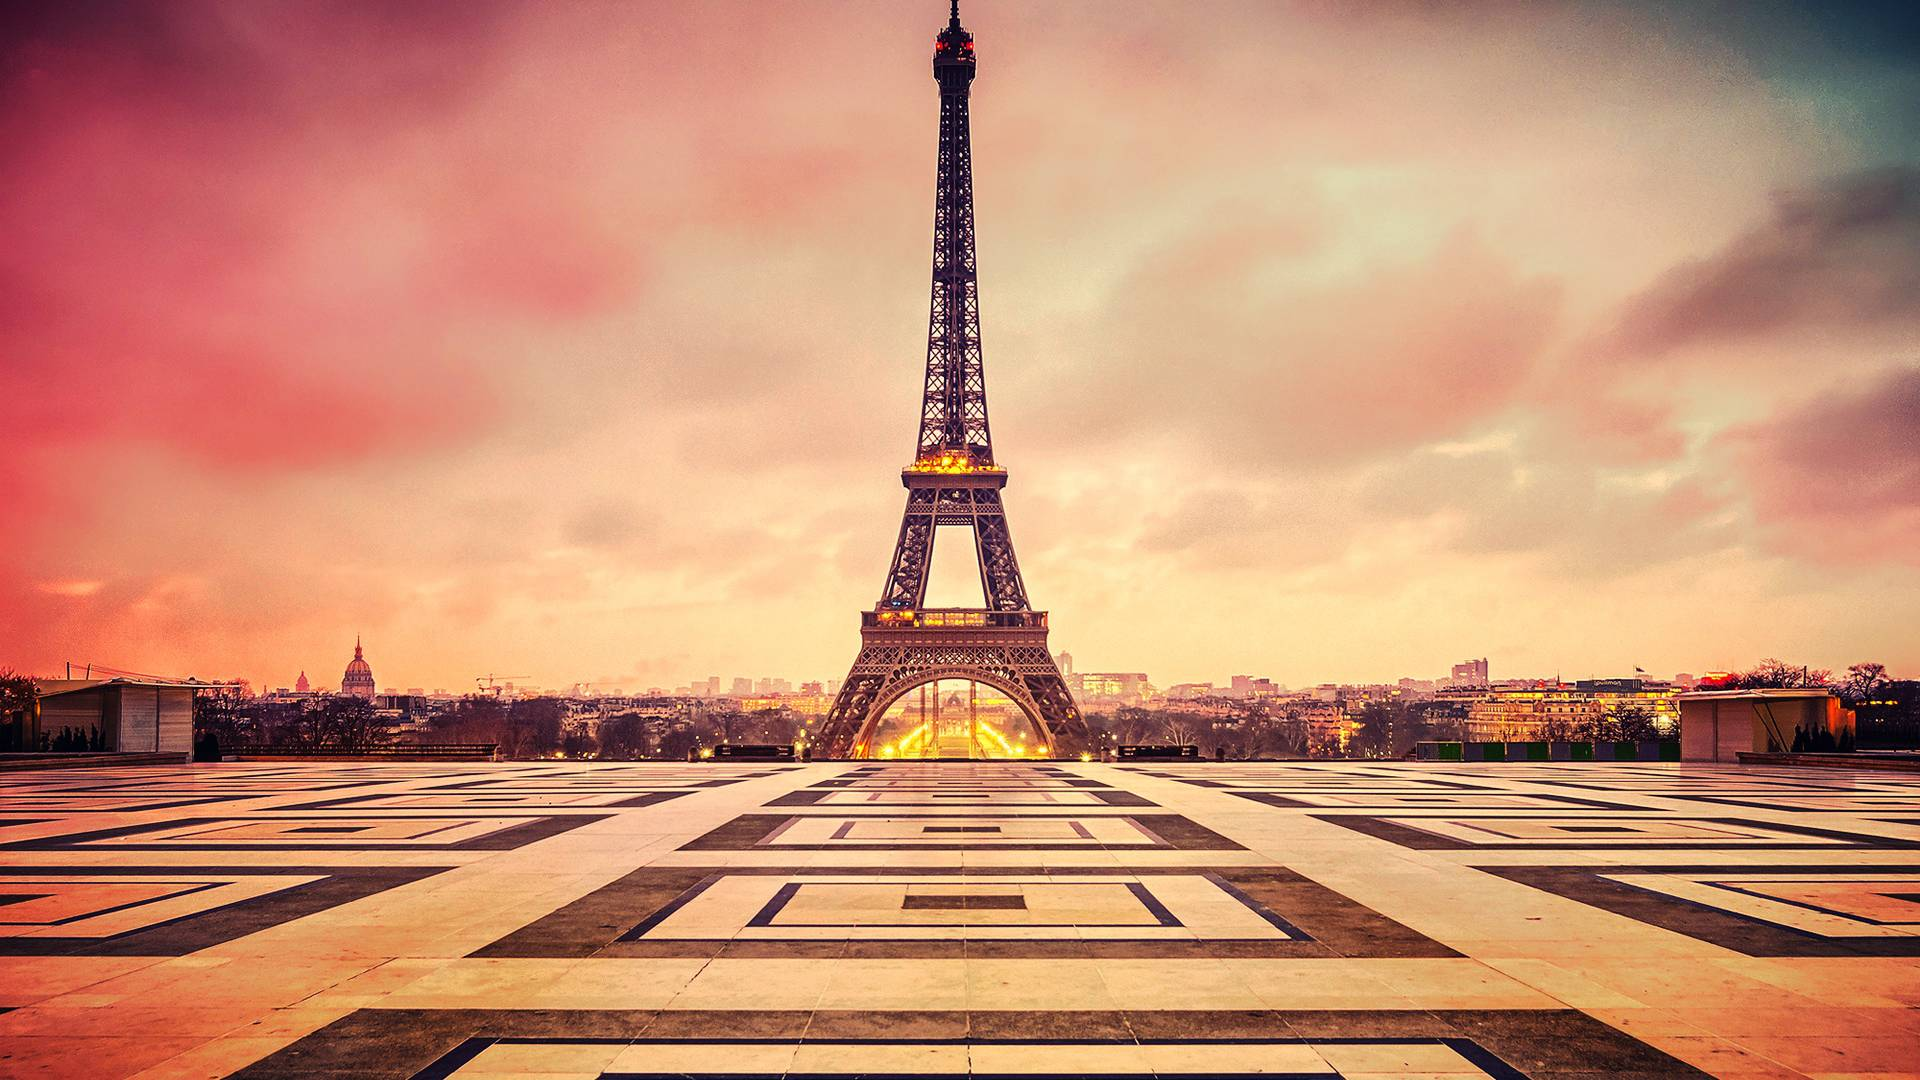 vintage-paris-wallpaper-desktop-0qk0